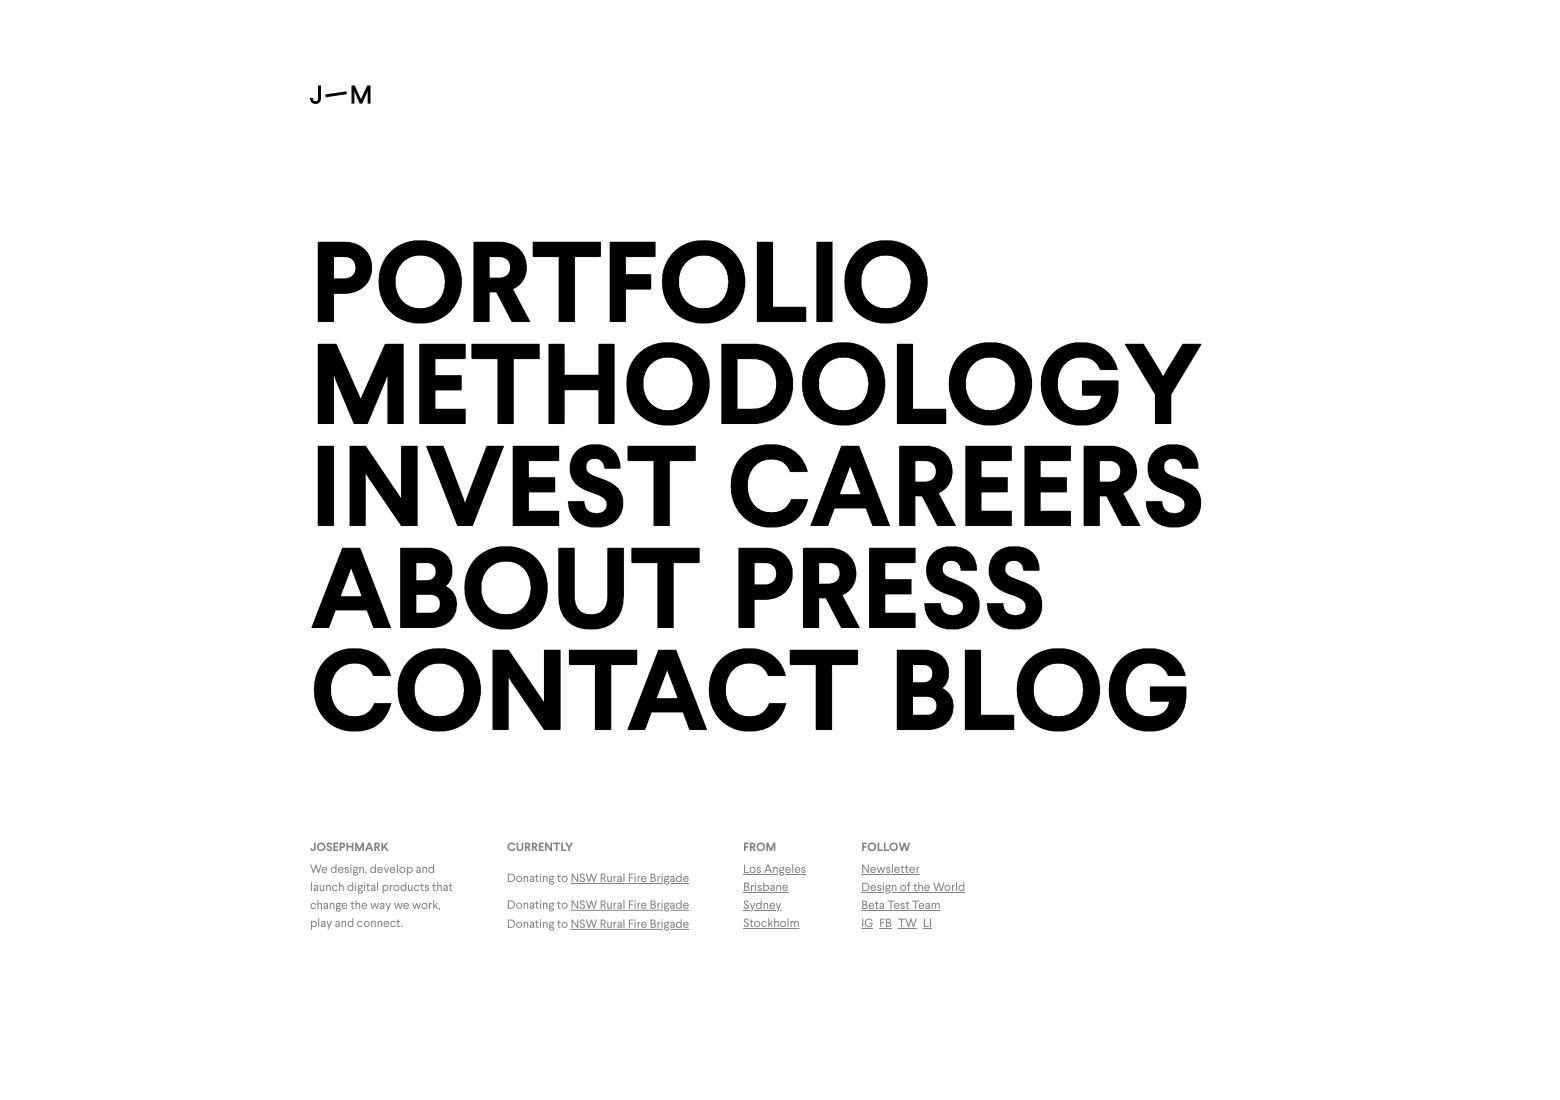 Website best practices: big typography is eye-catching and easy to read